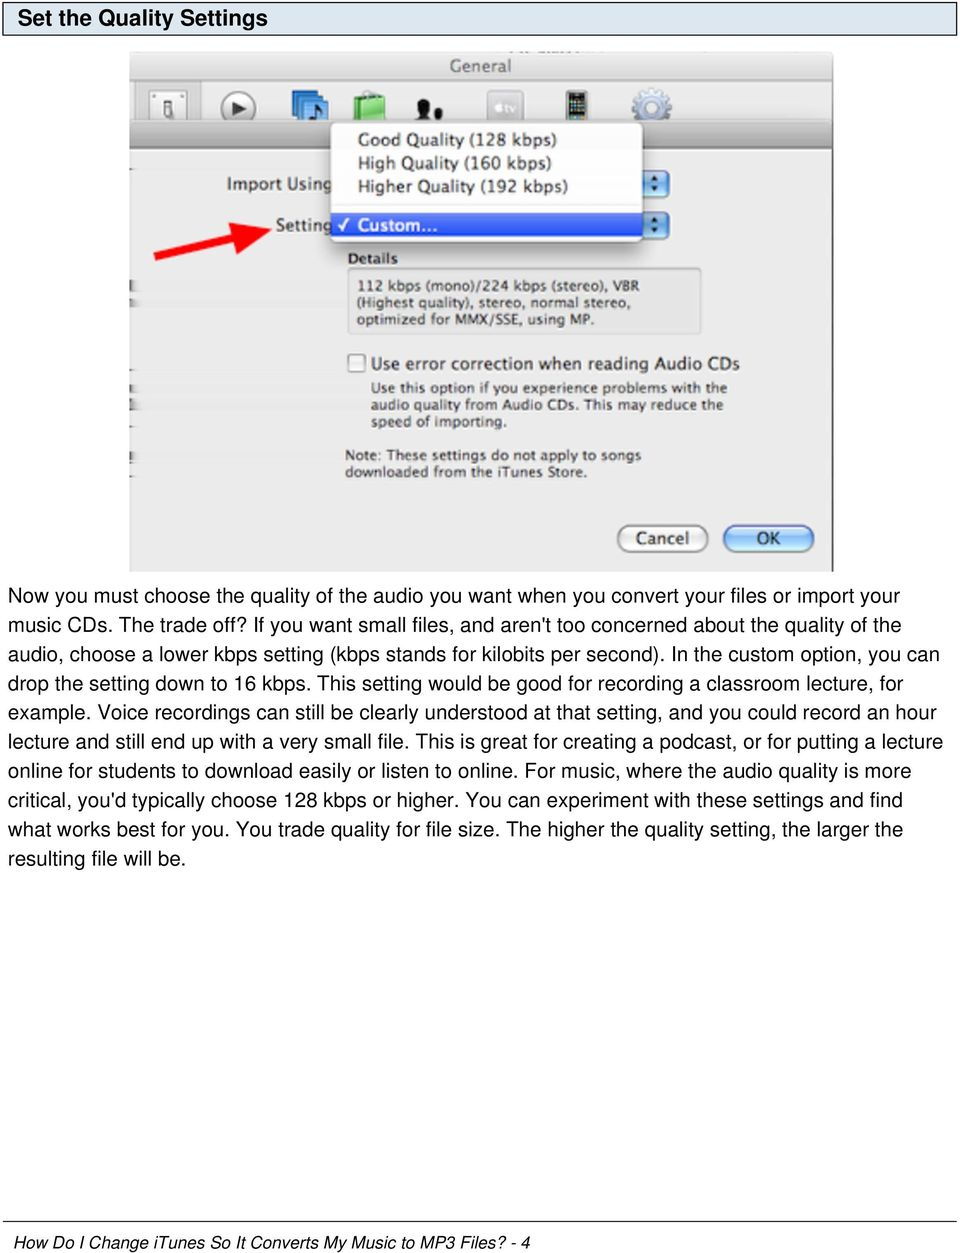 how to put mp3 files to itunes